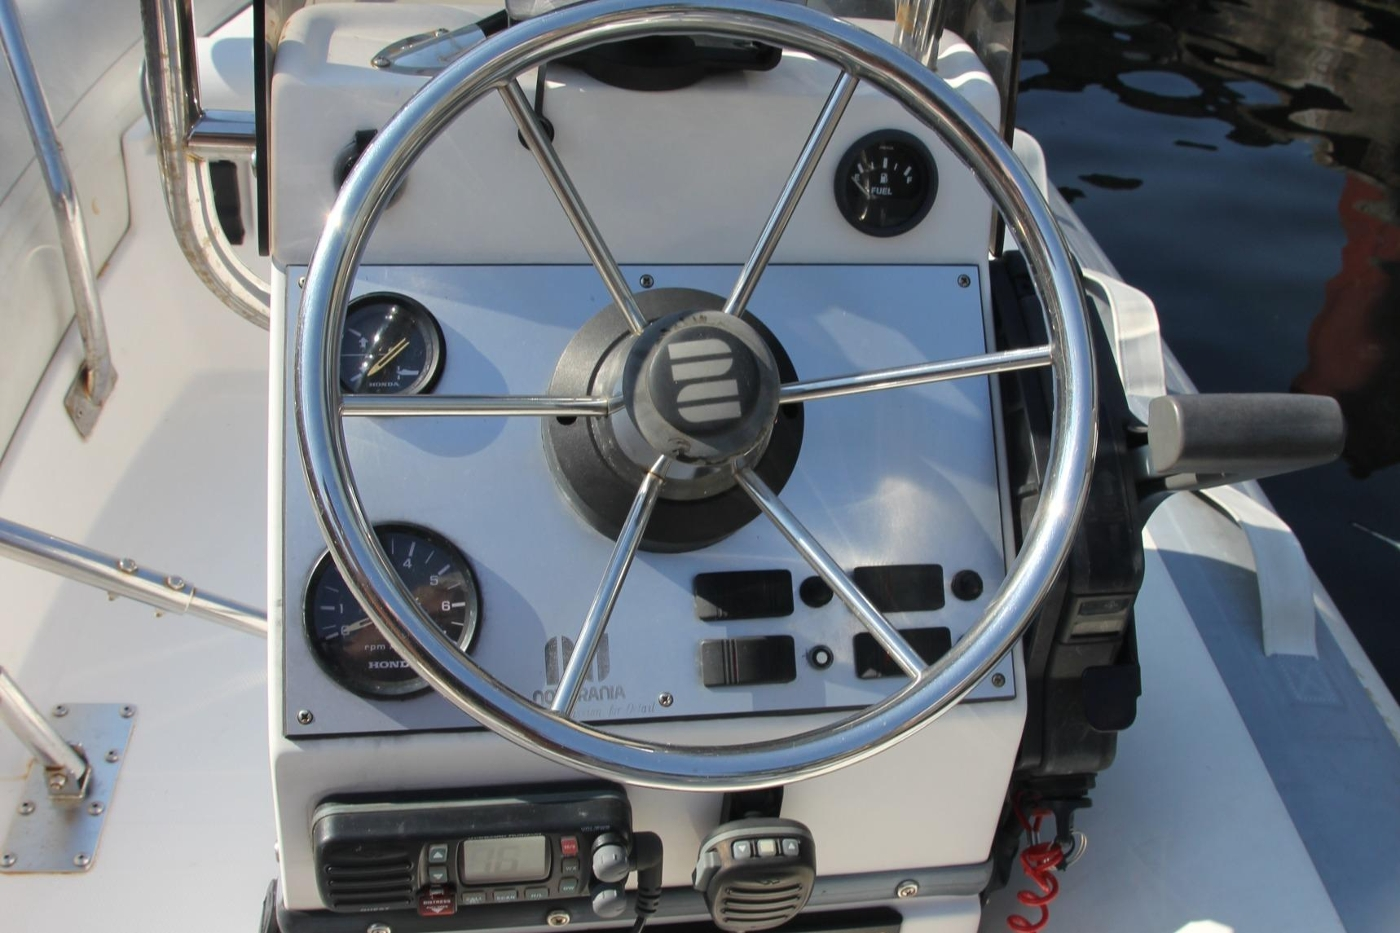 2001 Grand Banks 42 Classic, Tender Console